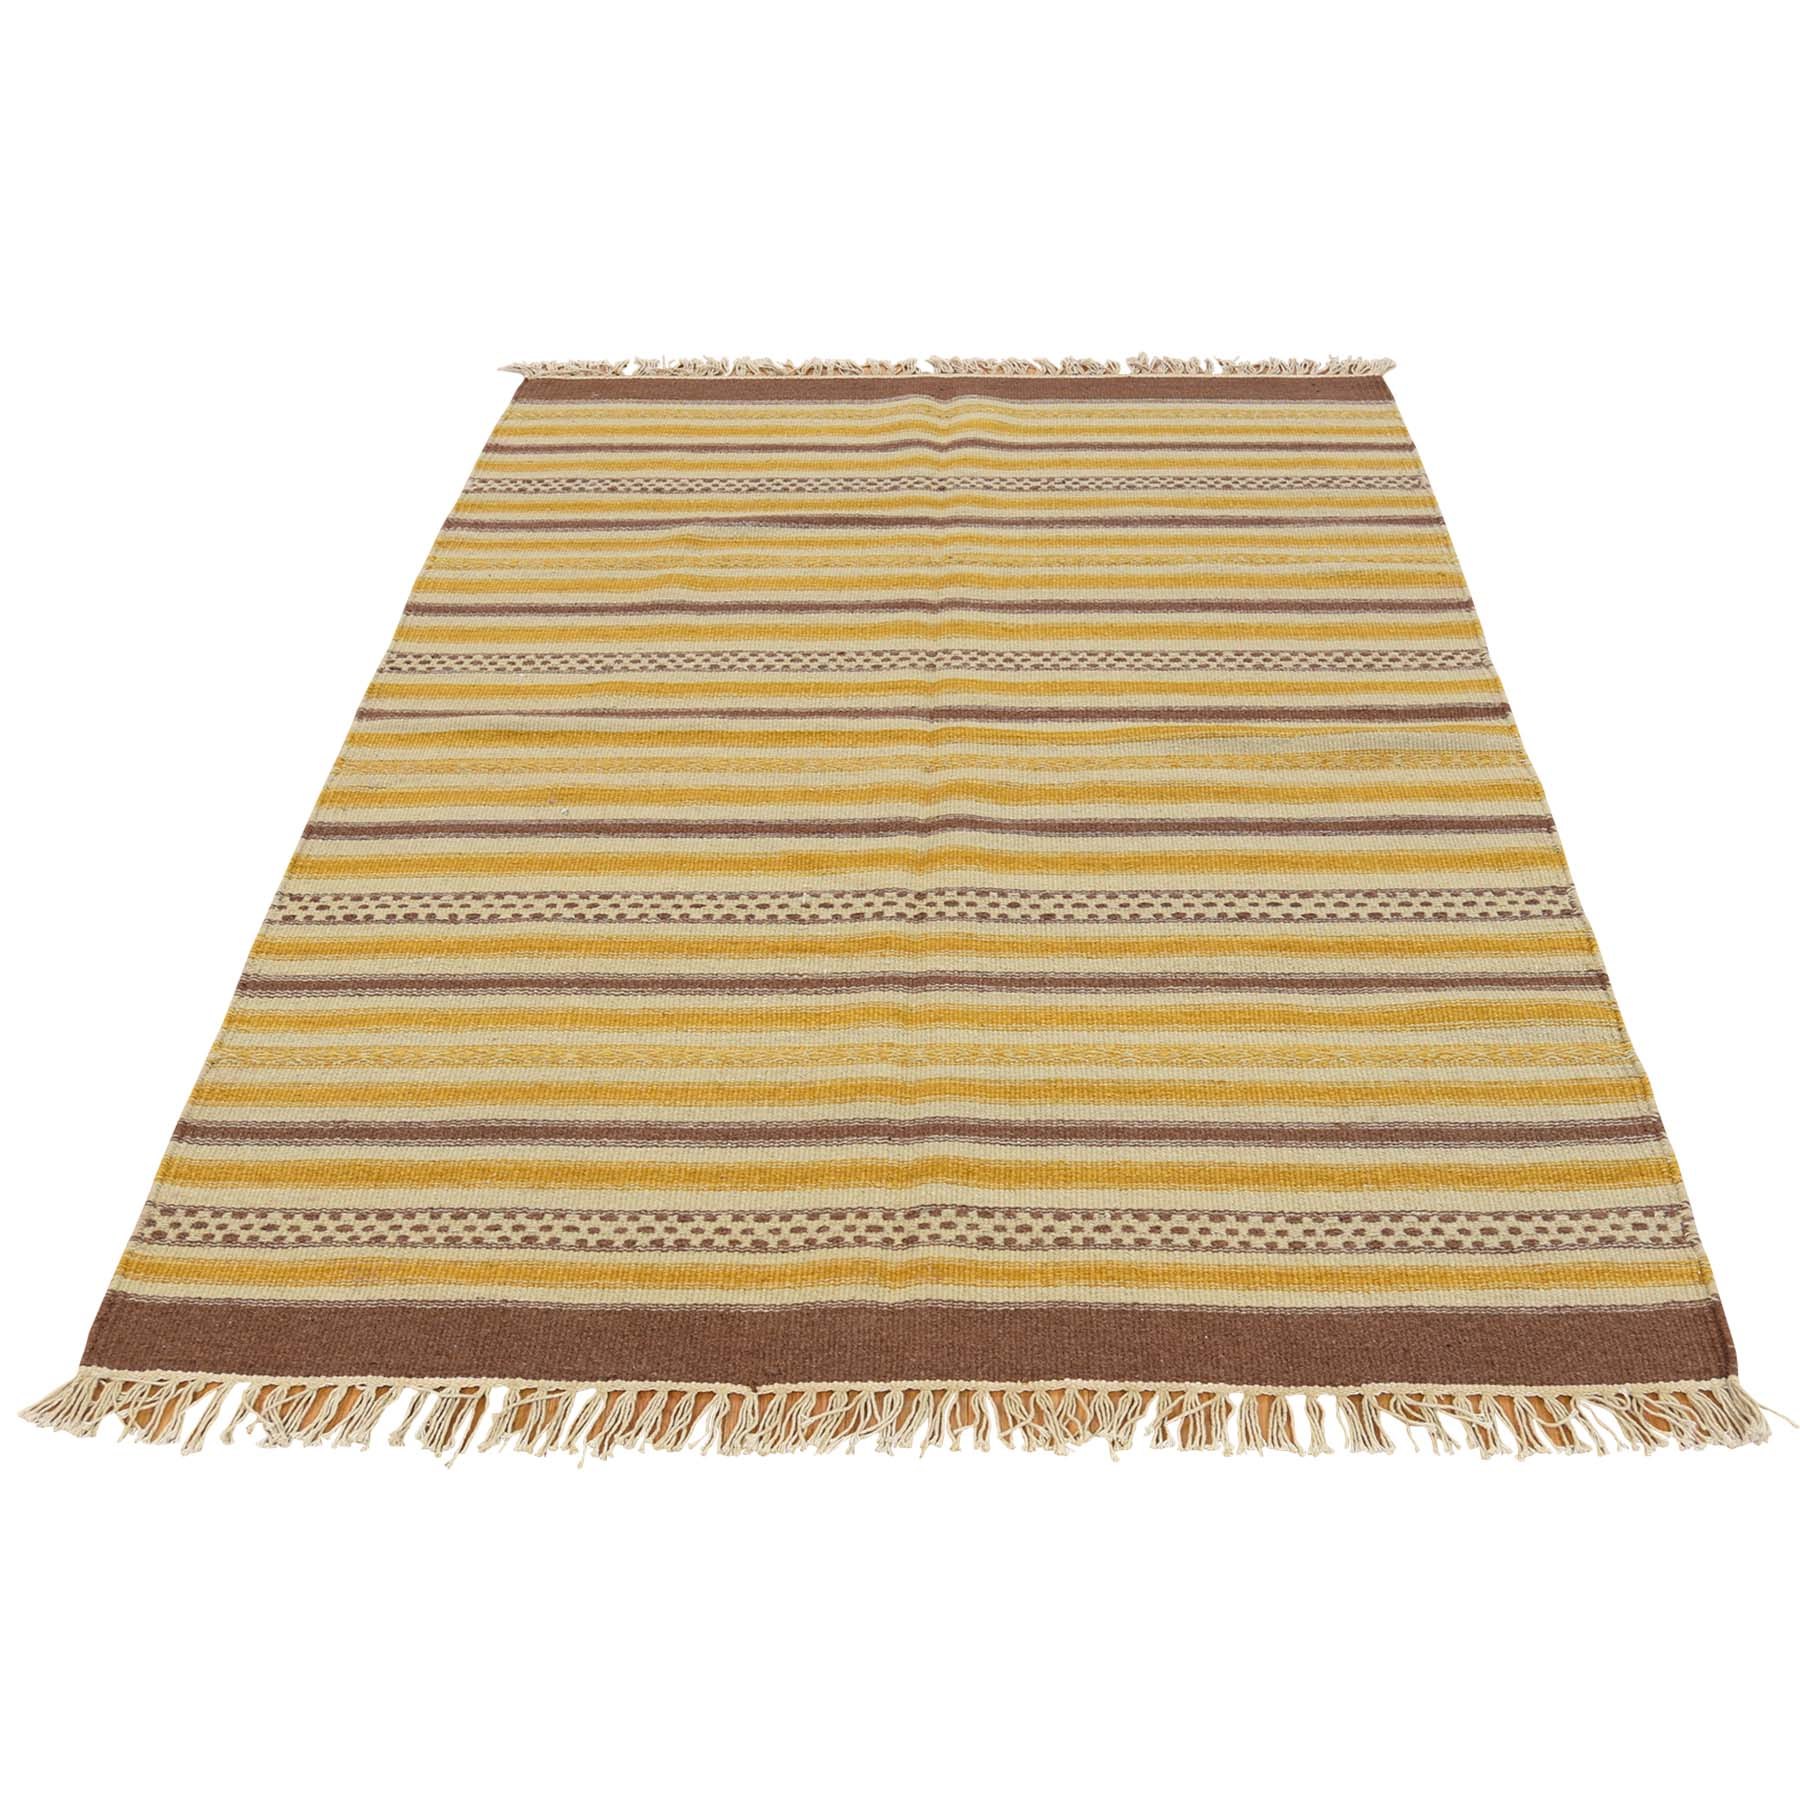 3'10''X6' Striped Flat Weave Durie Kilim Hand Woven Reversible Rug  moac79cb